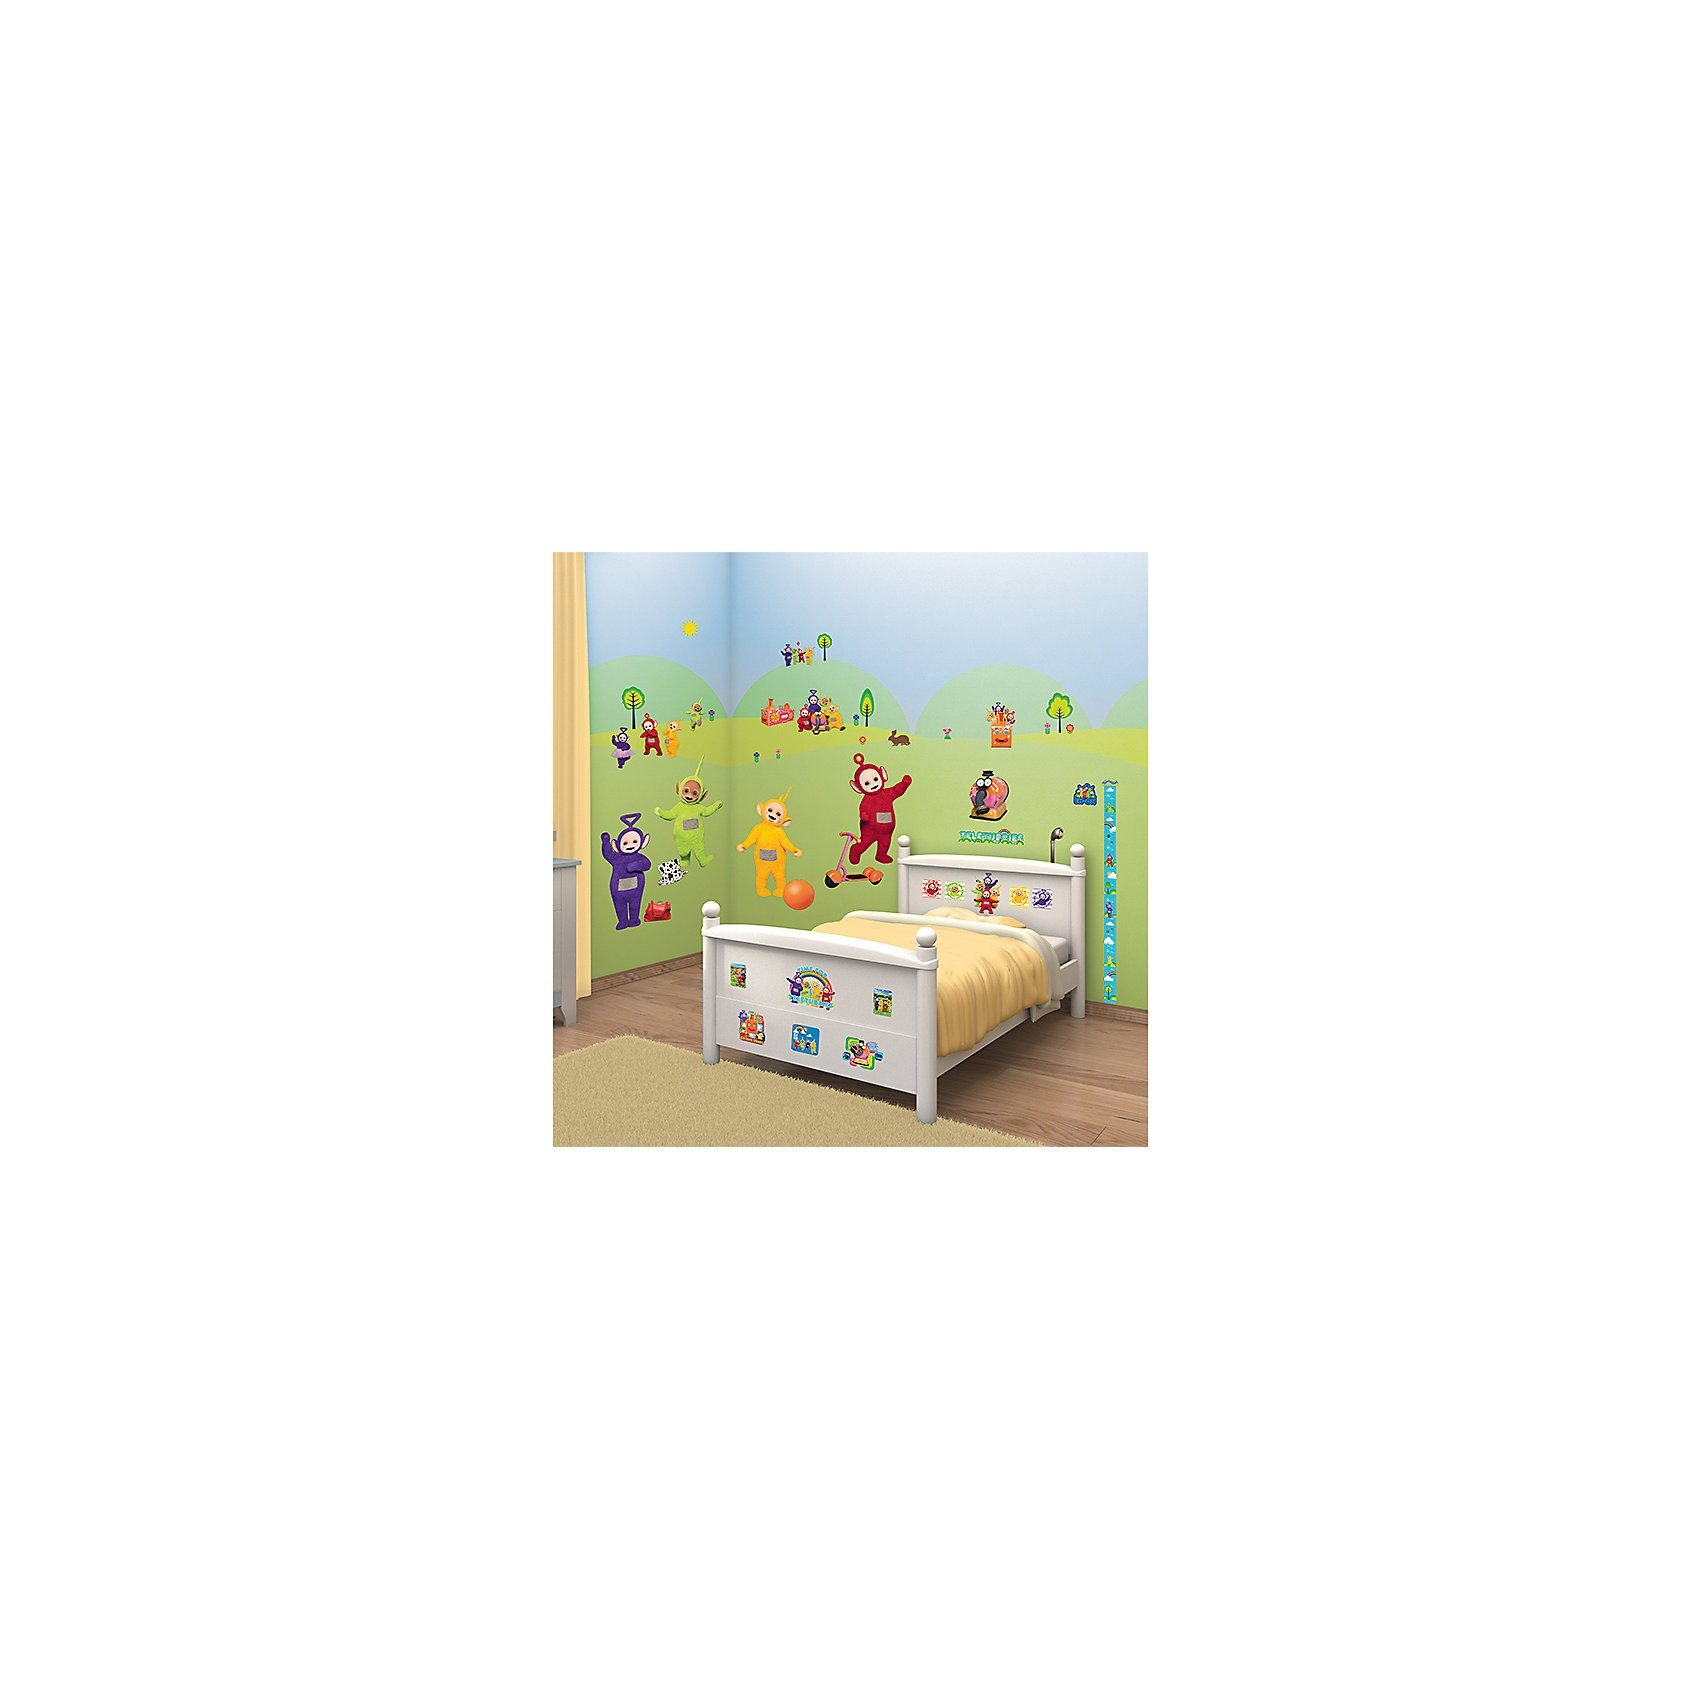 Walltastic Wandsticker inkl. Messlatte, Teletubbies